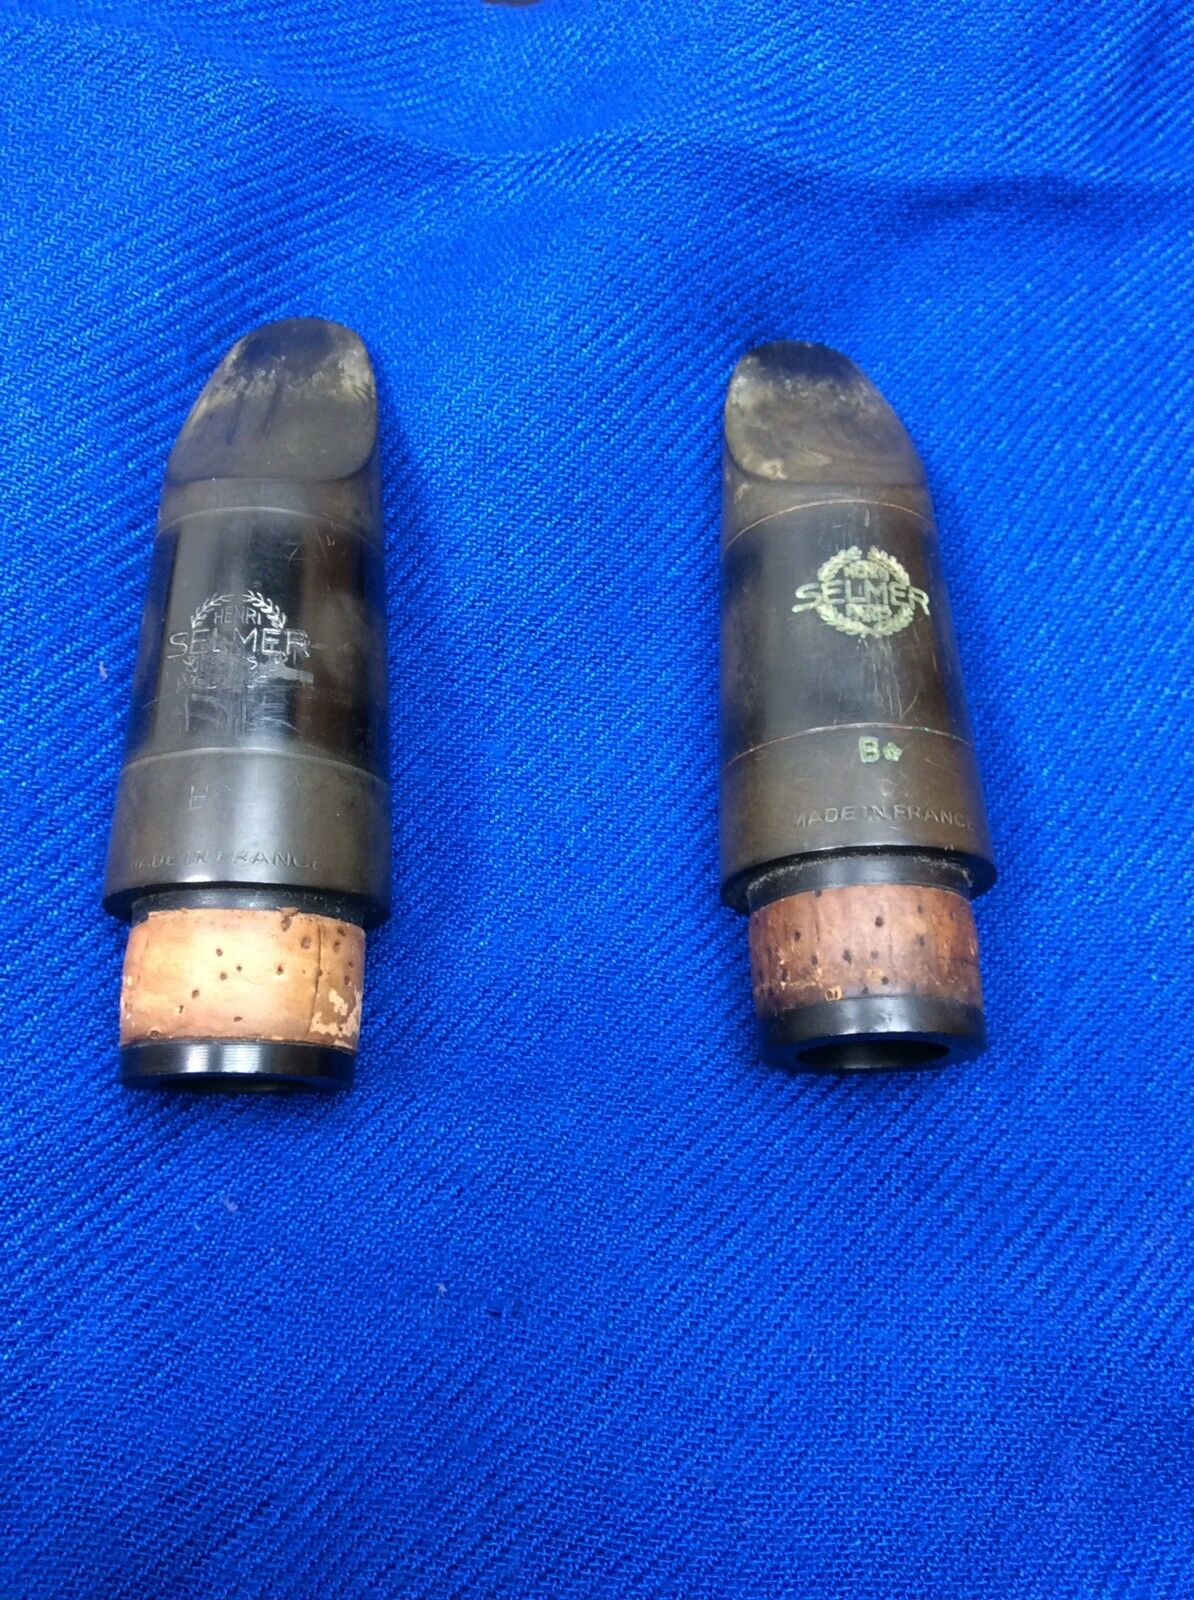 Selmer HS & B Clarinet Mouthpiece Two Piece Lot